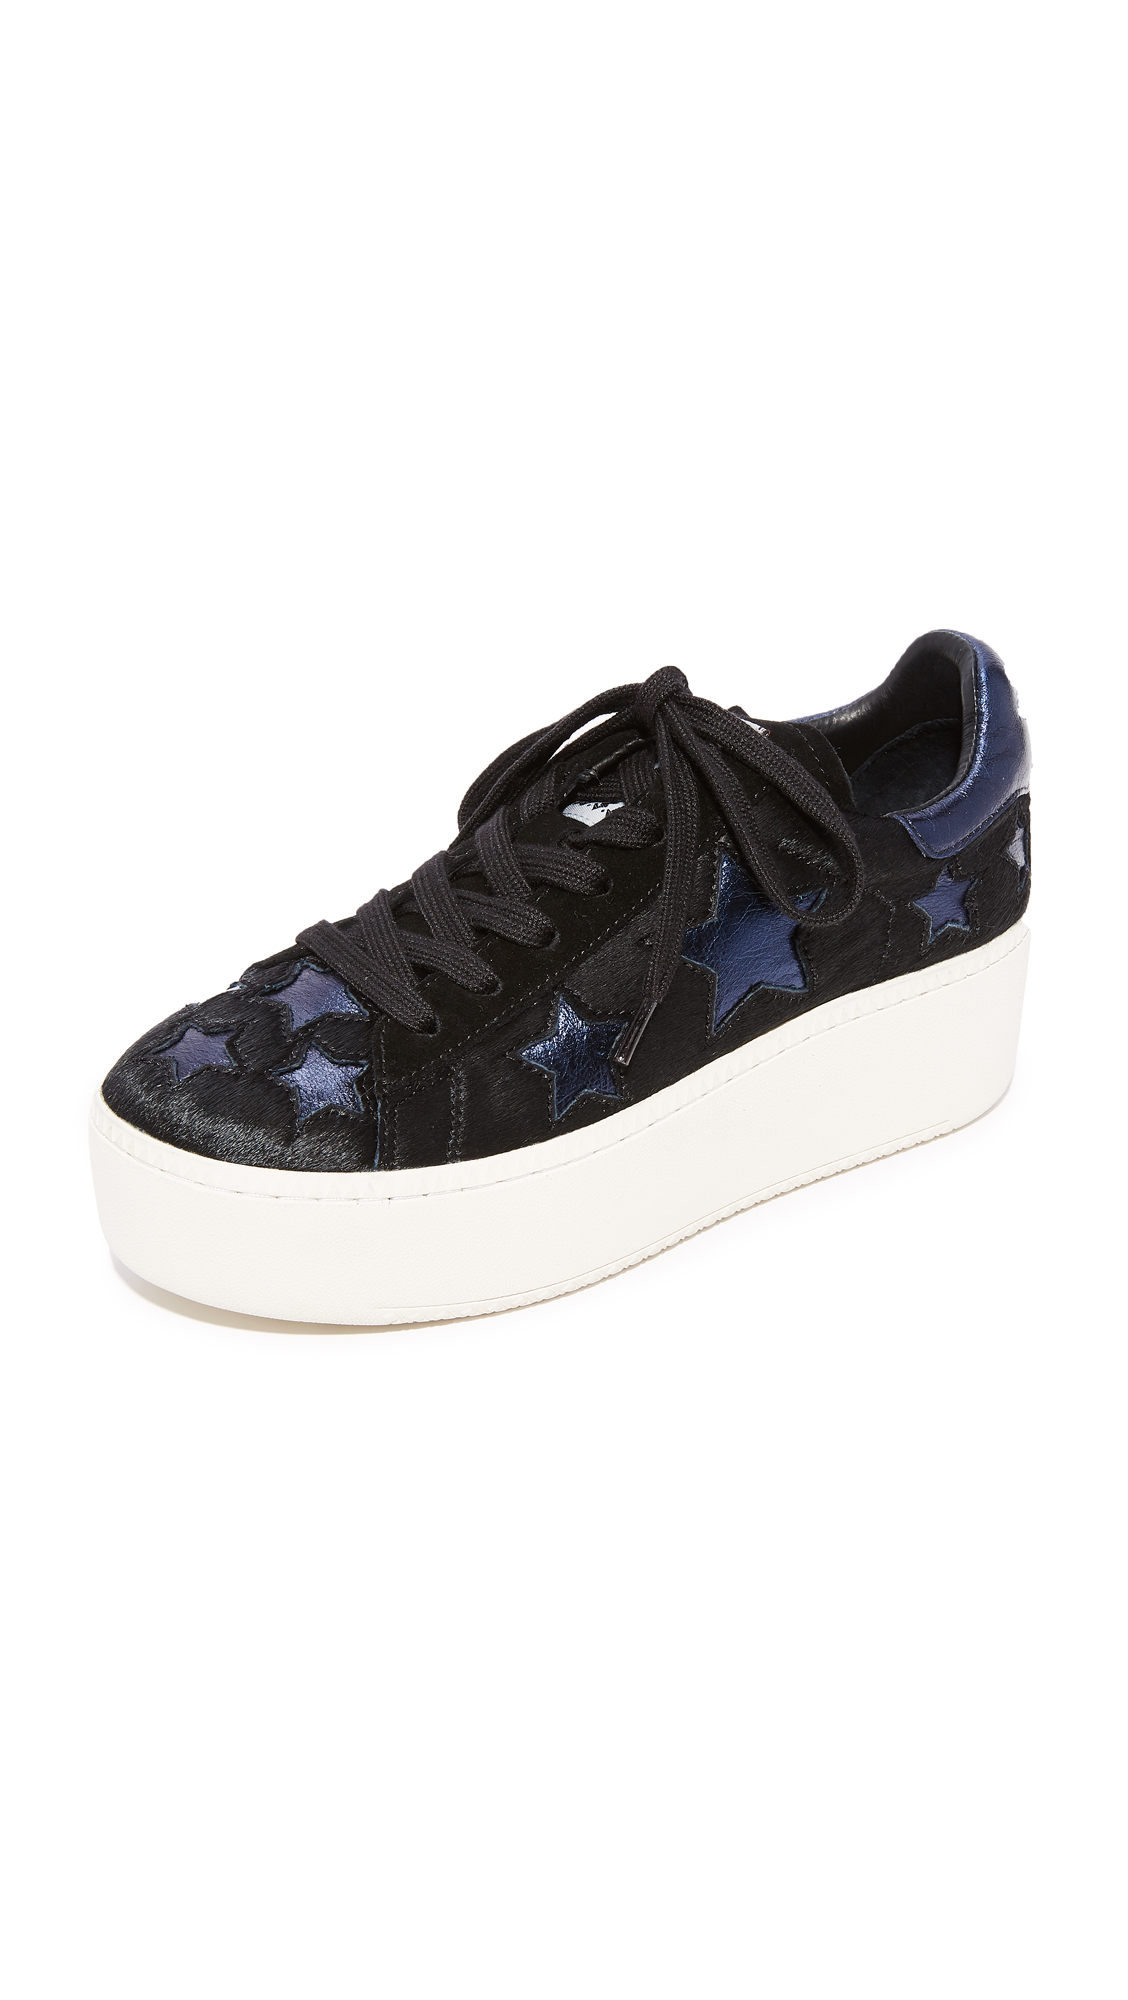 Ash Cult Star Platform Sneakers - Black/Midnight